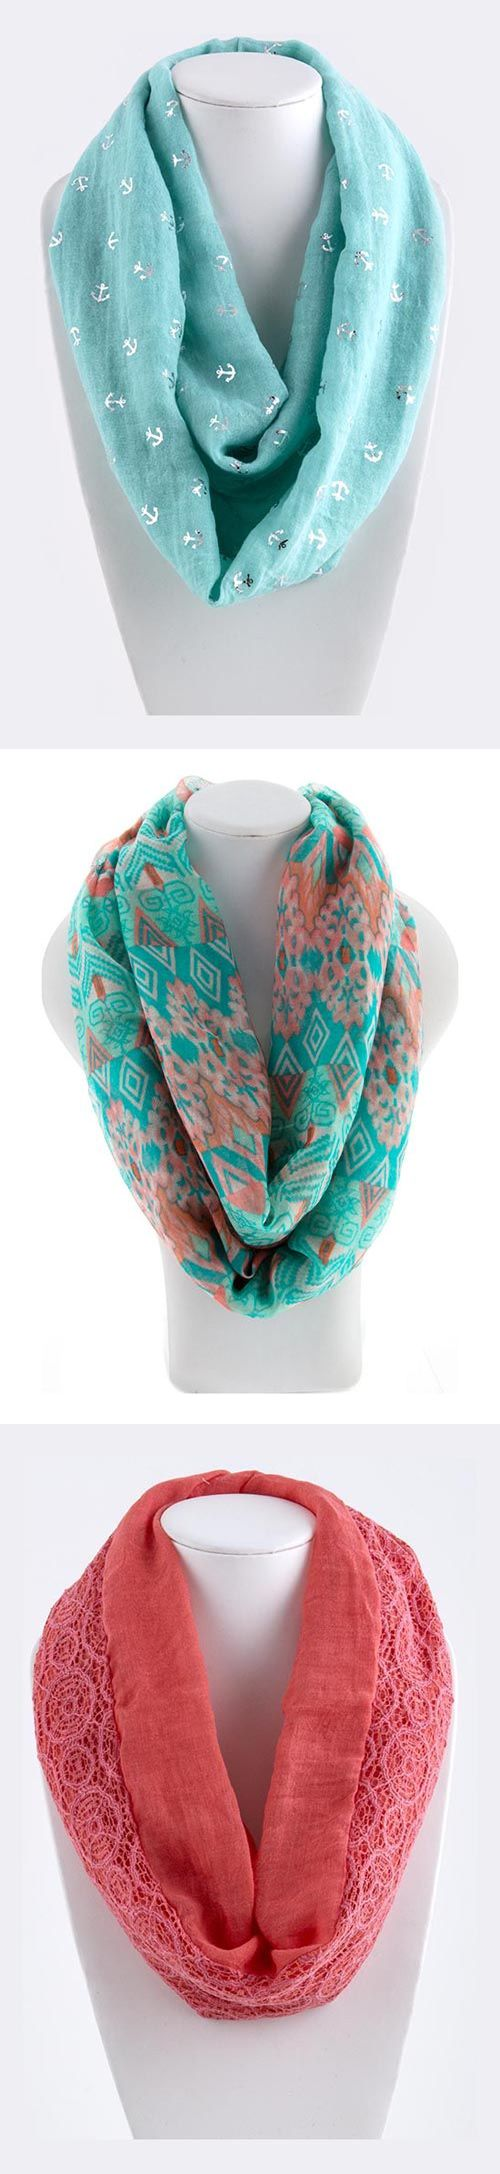 Cute Infinity Scarves that are on the classier side of fashion